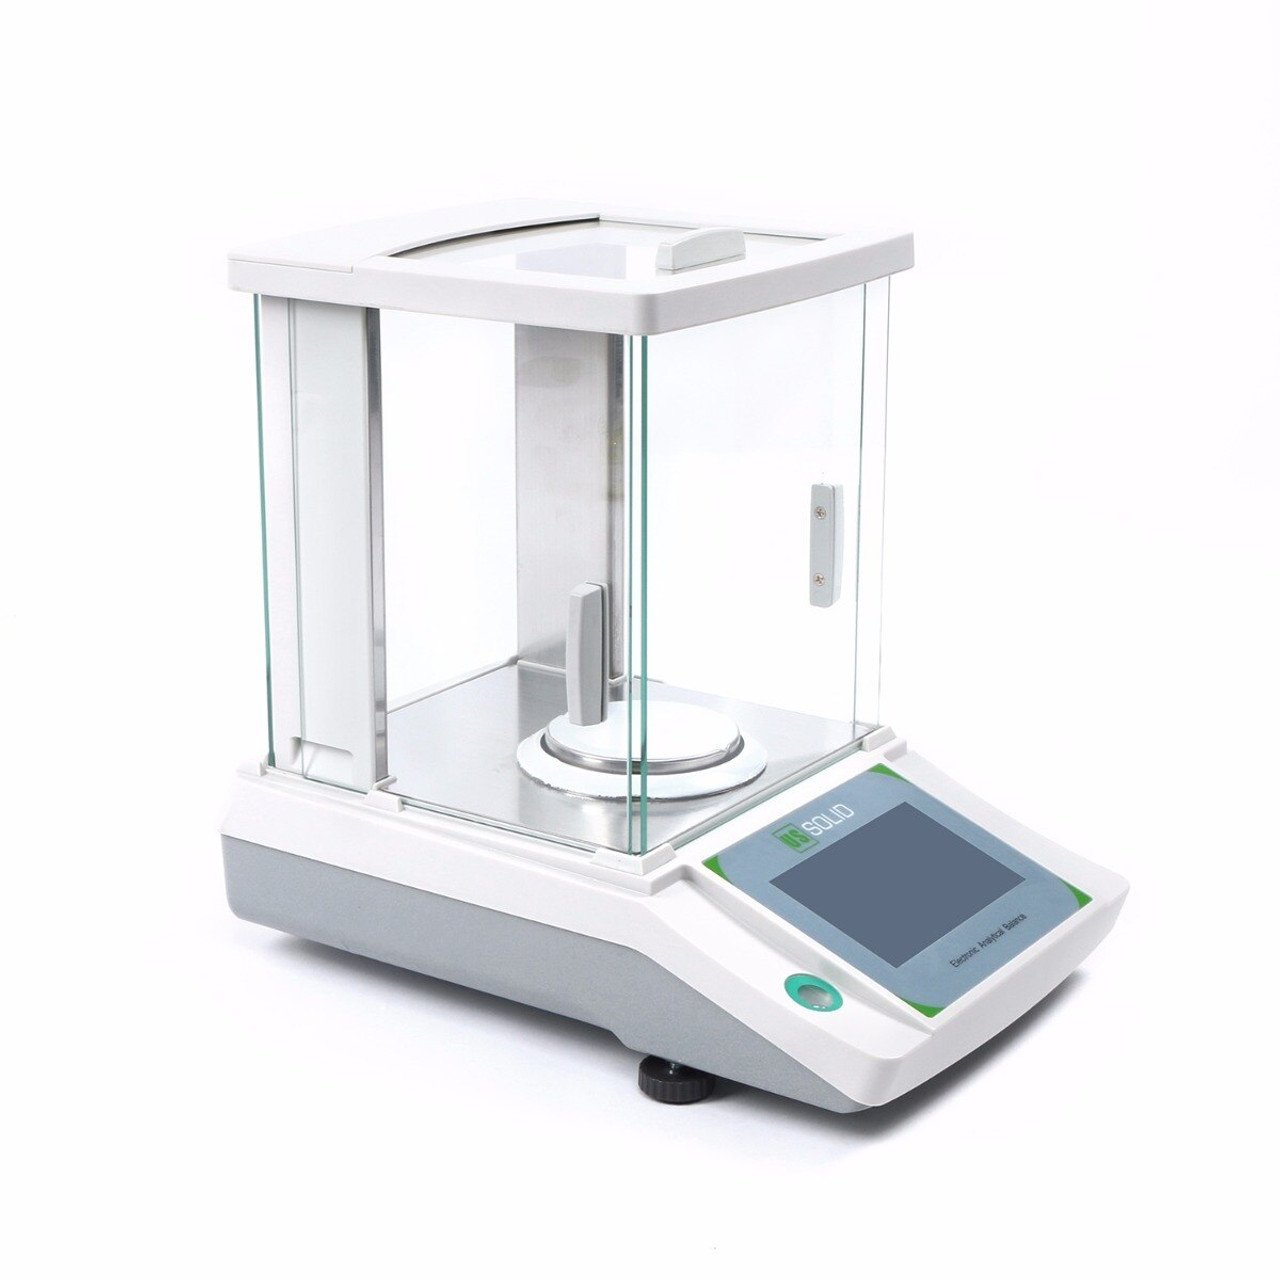 0.1mg Mobile-controlled Analytical Balance, 0.1g x 120g Bluetooth-connected Lab Precision Balance, Touch Screen